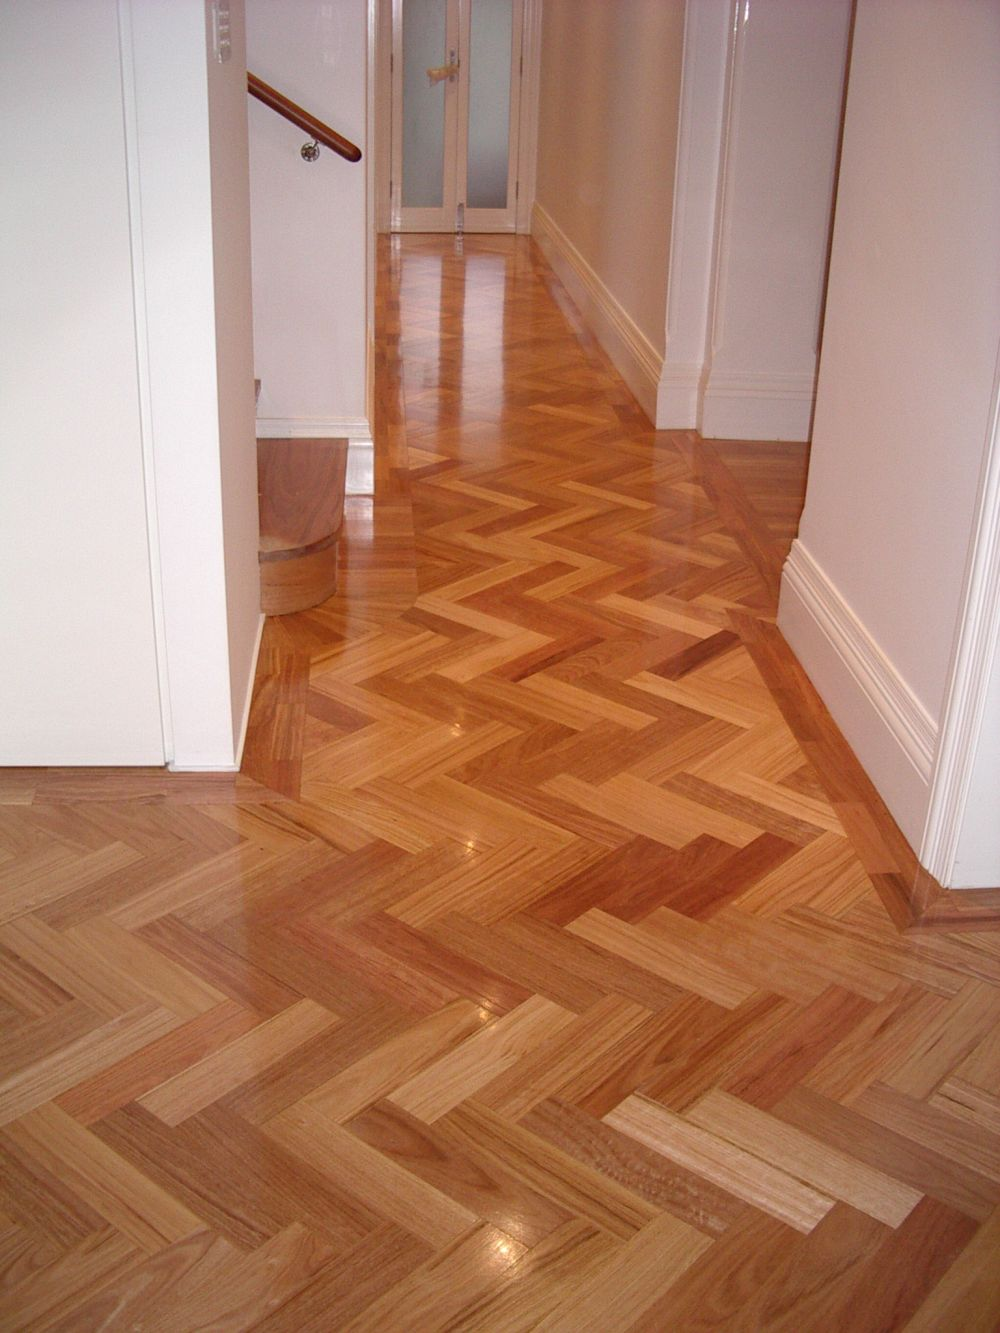 20140324043417221_website_parquetry_Blackbuttparquetryinherringbone130.jpg